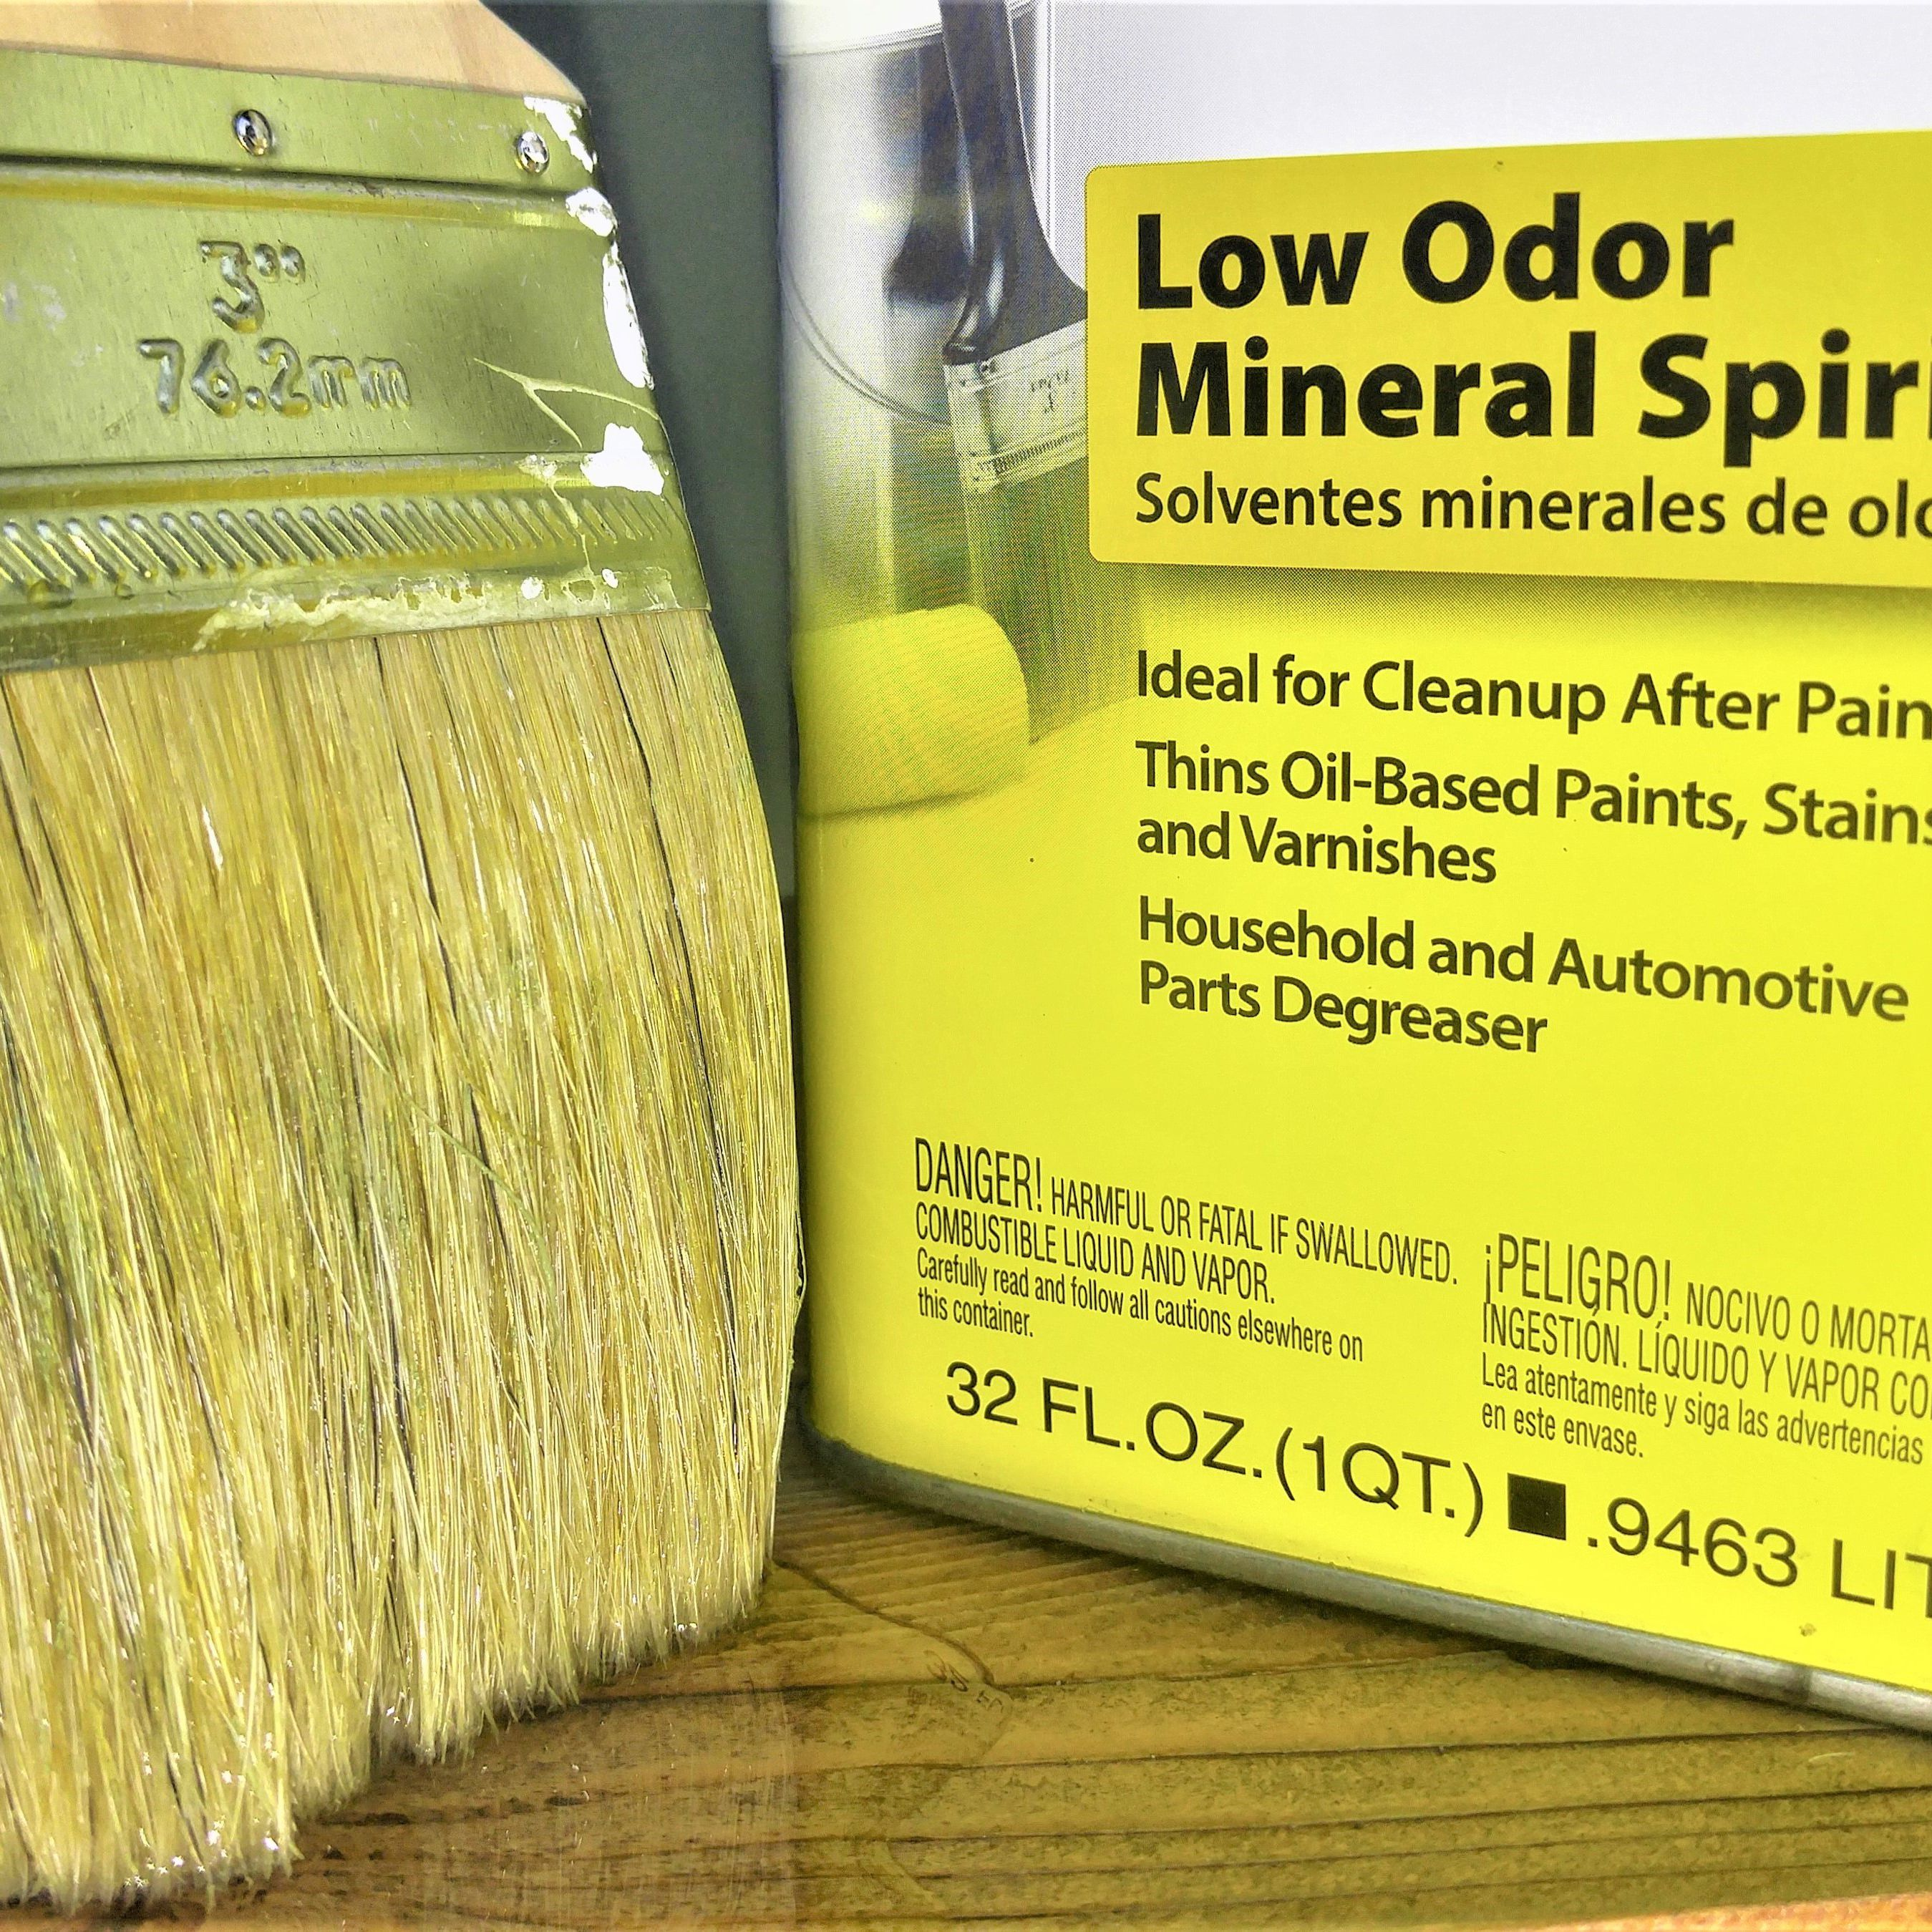 Mineral Spirits vs. Paint Thinner: What's the Difference?